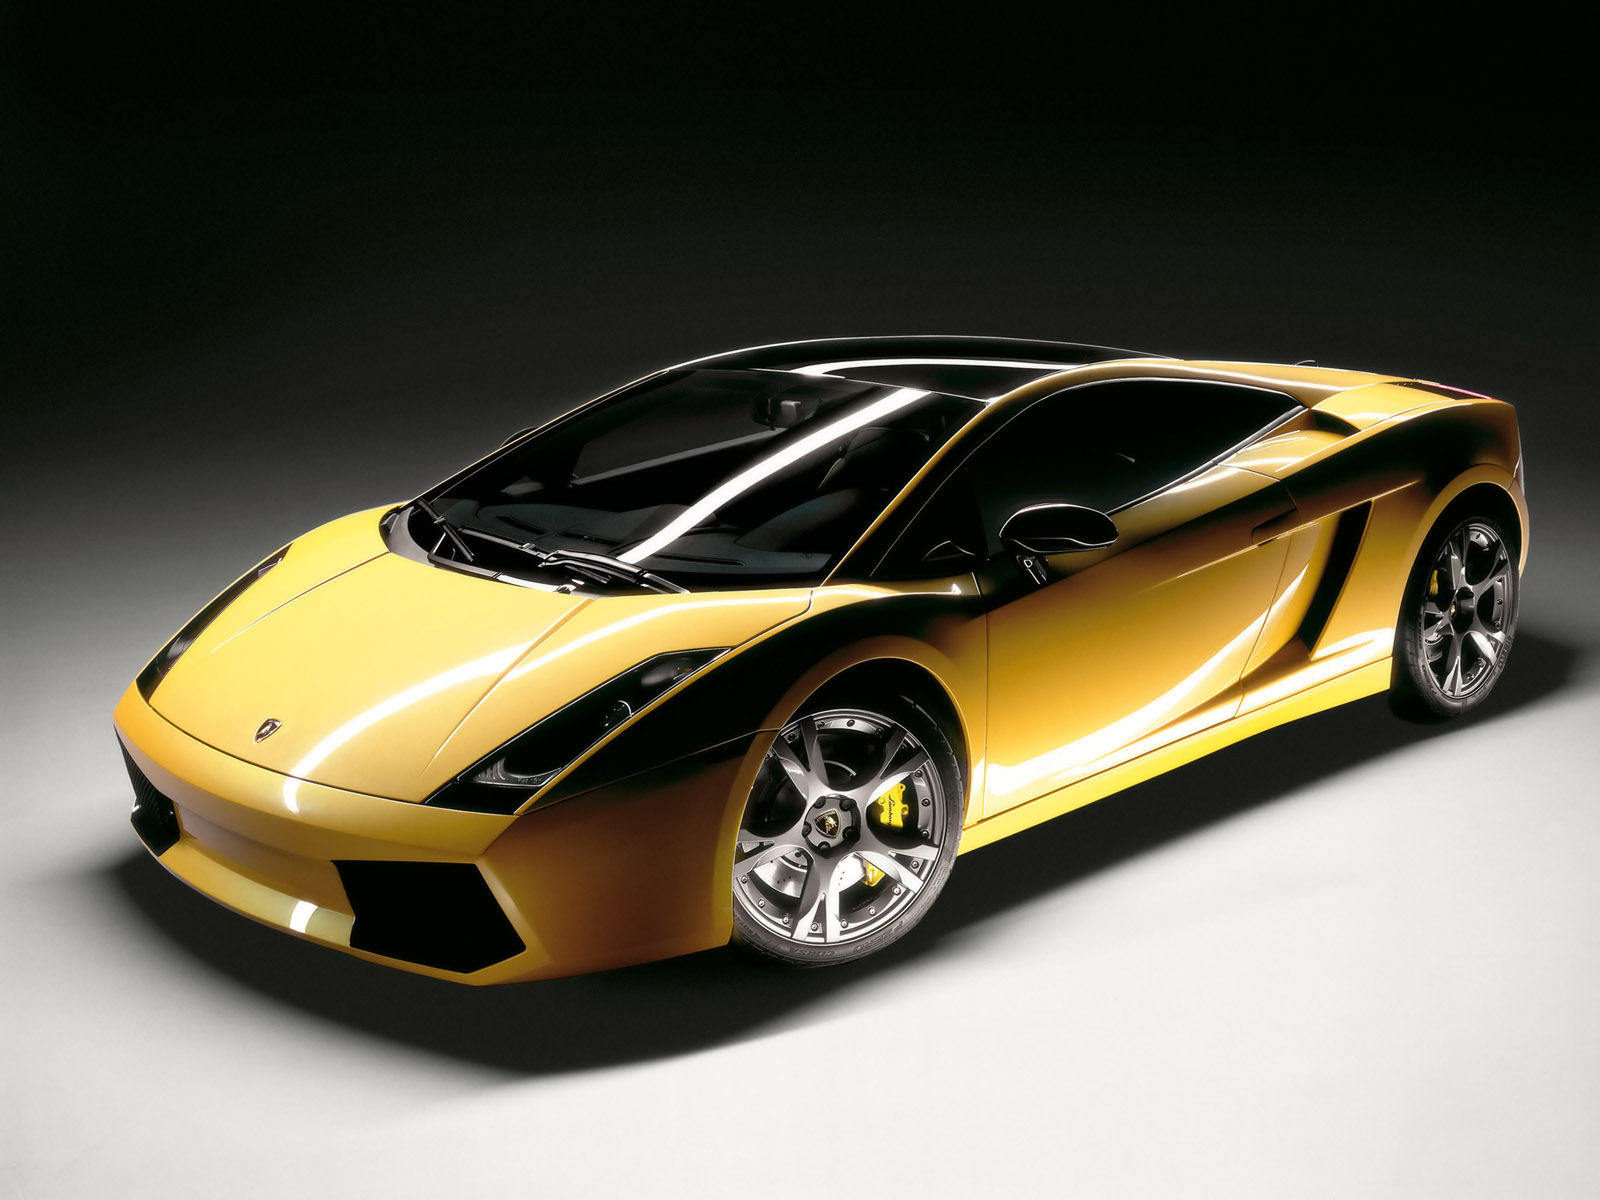 Cool Images Lamborghini Gallardo Wallpapers